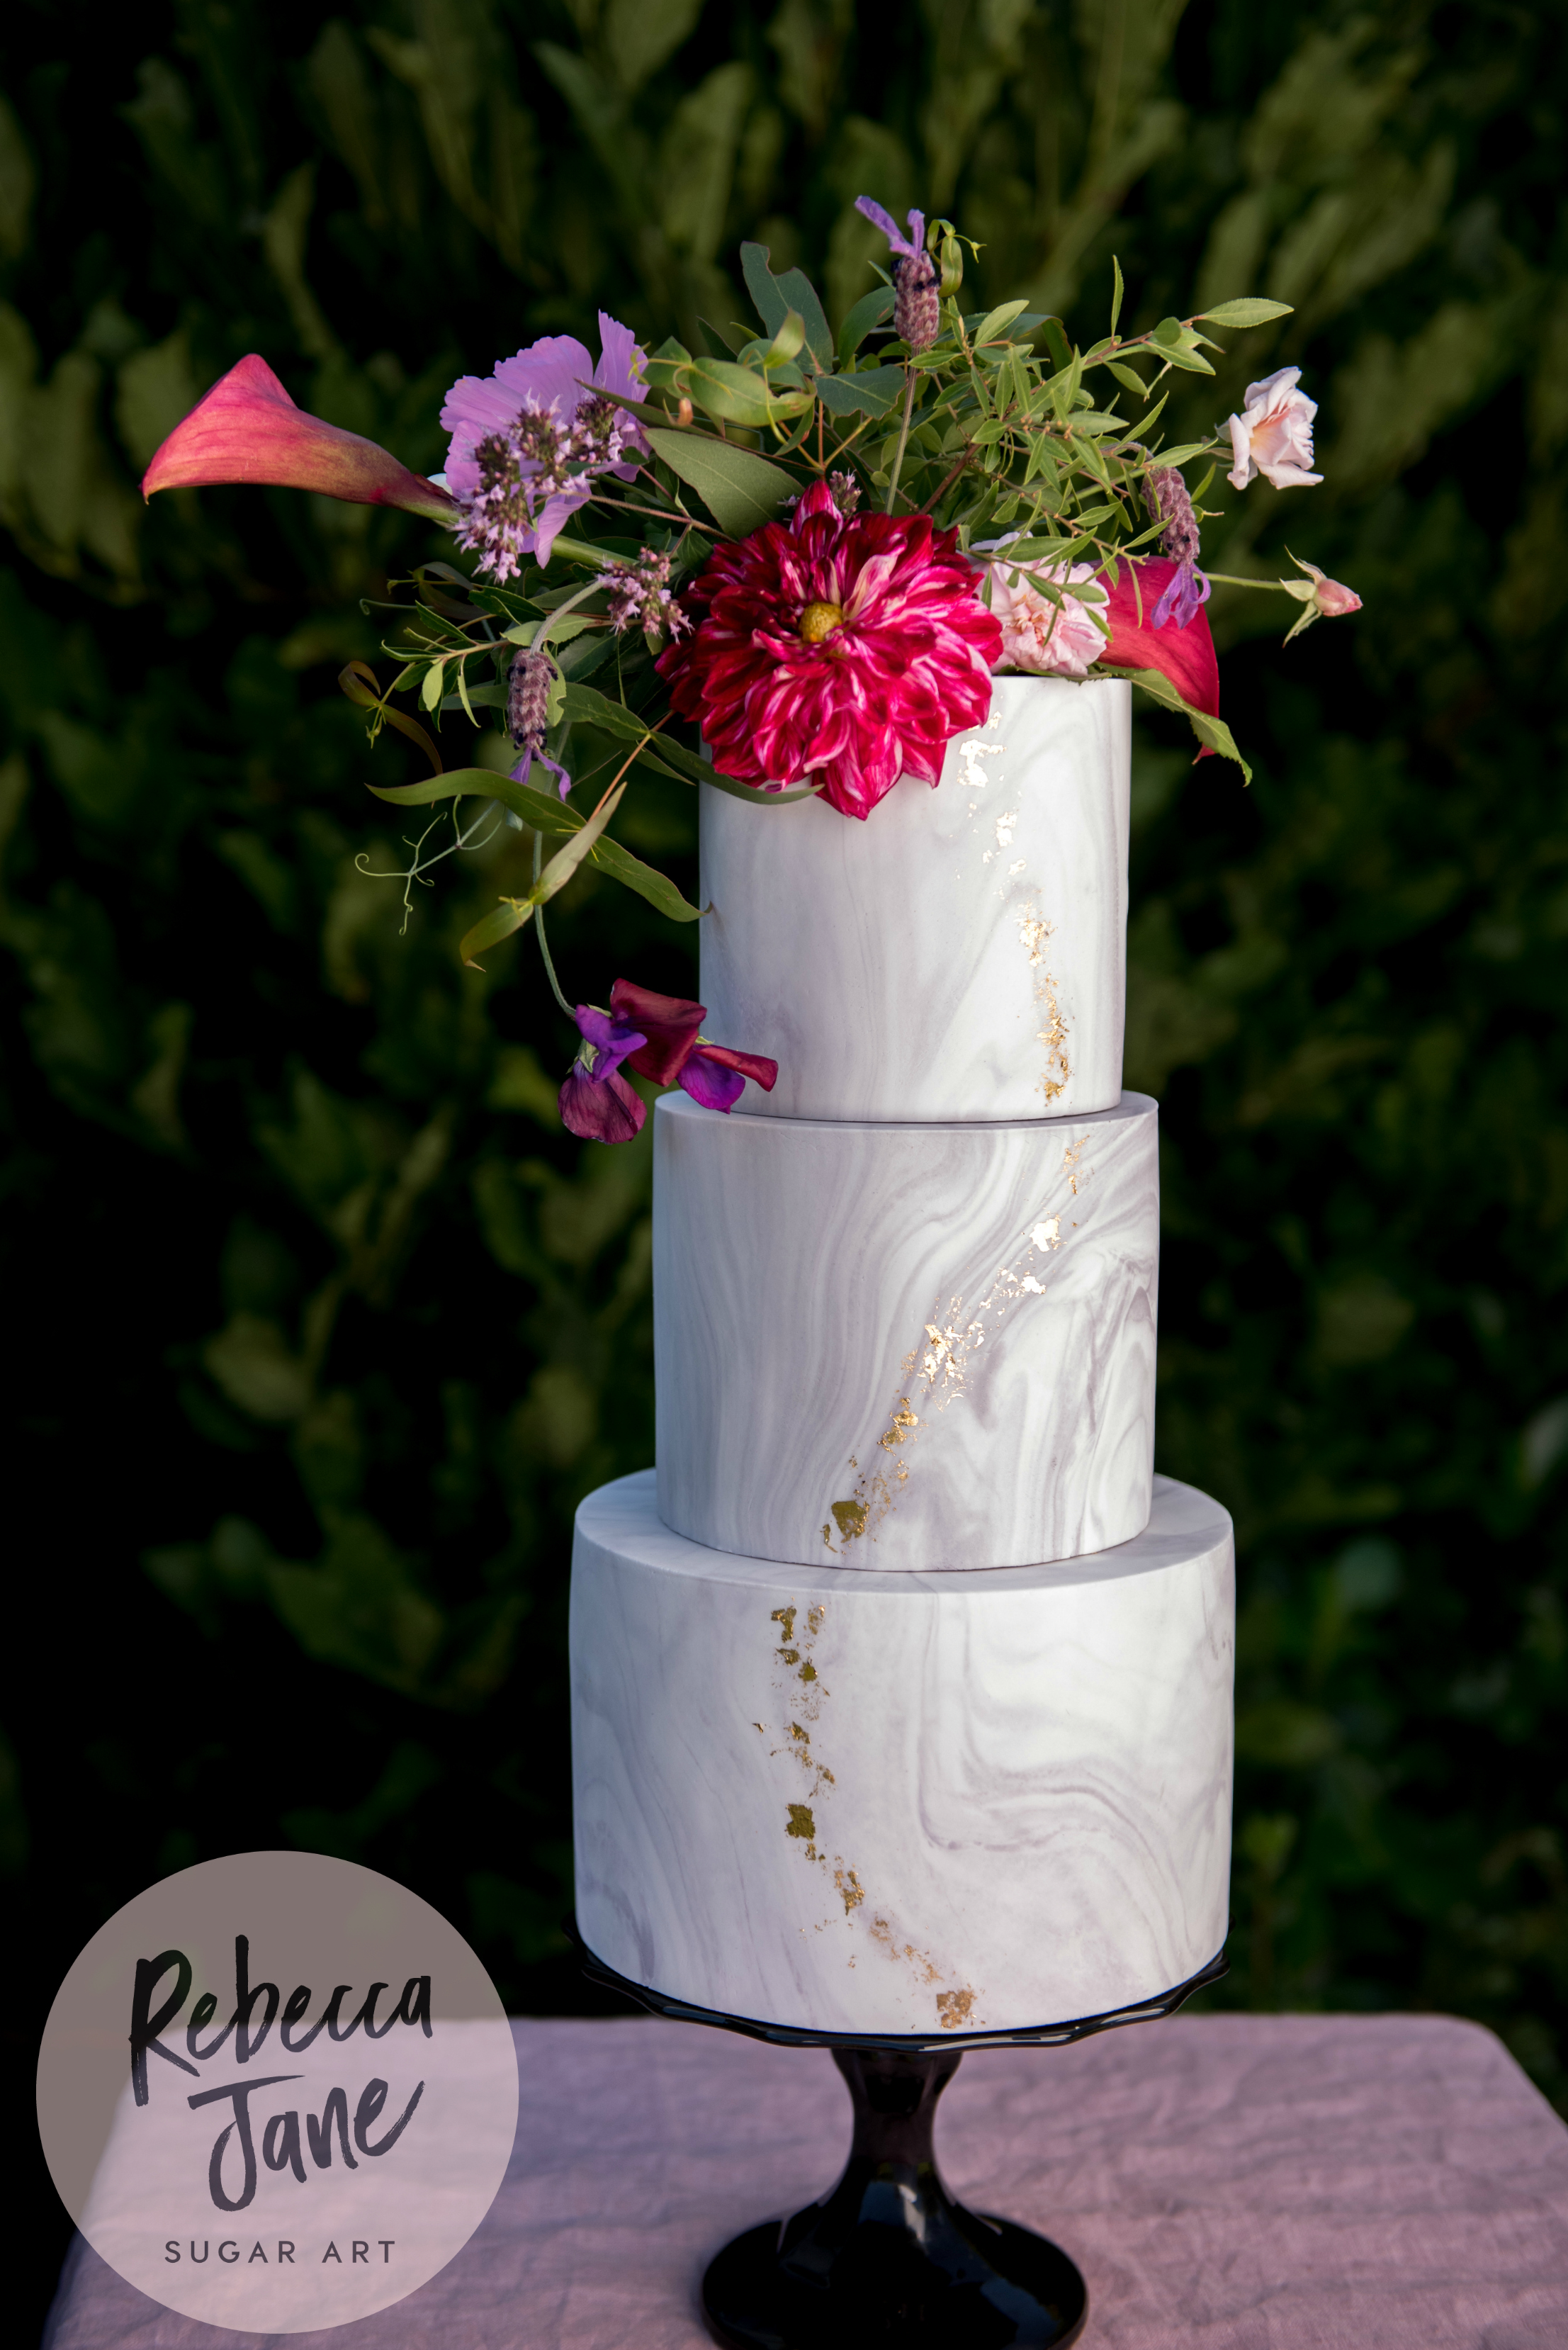 Rebecca Jane Sugar Art - floral marble gold leaf wedding cake